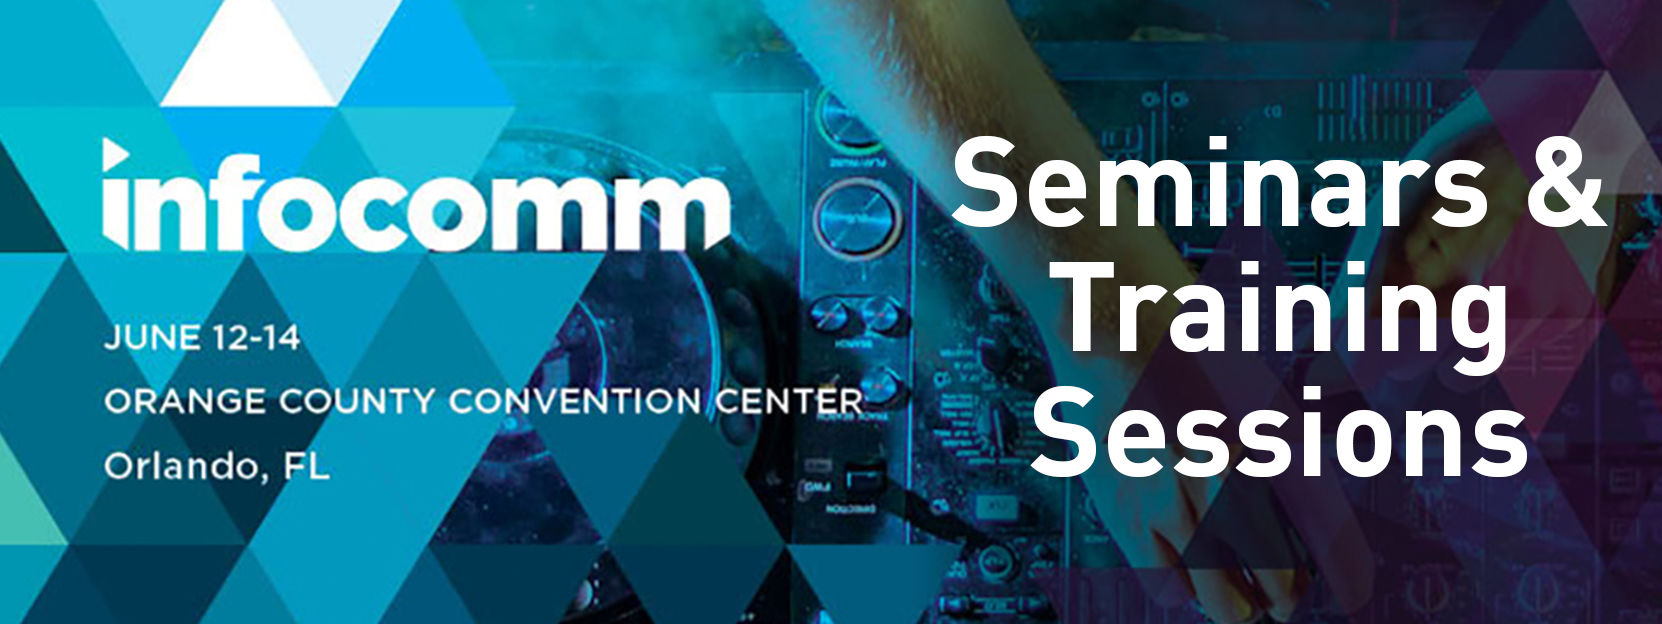 panasonic-training-sessions-and-seminars-at-infocomm-2019-header-image